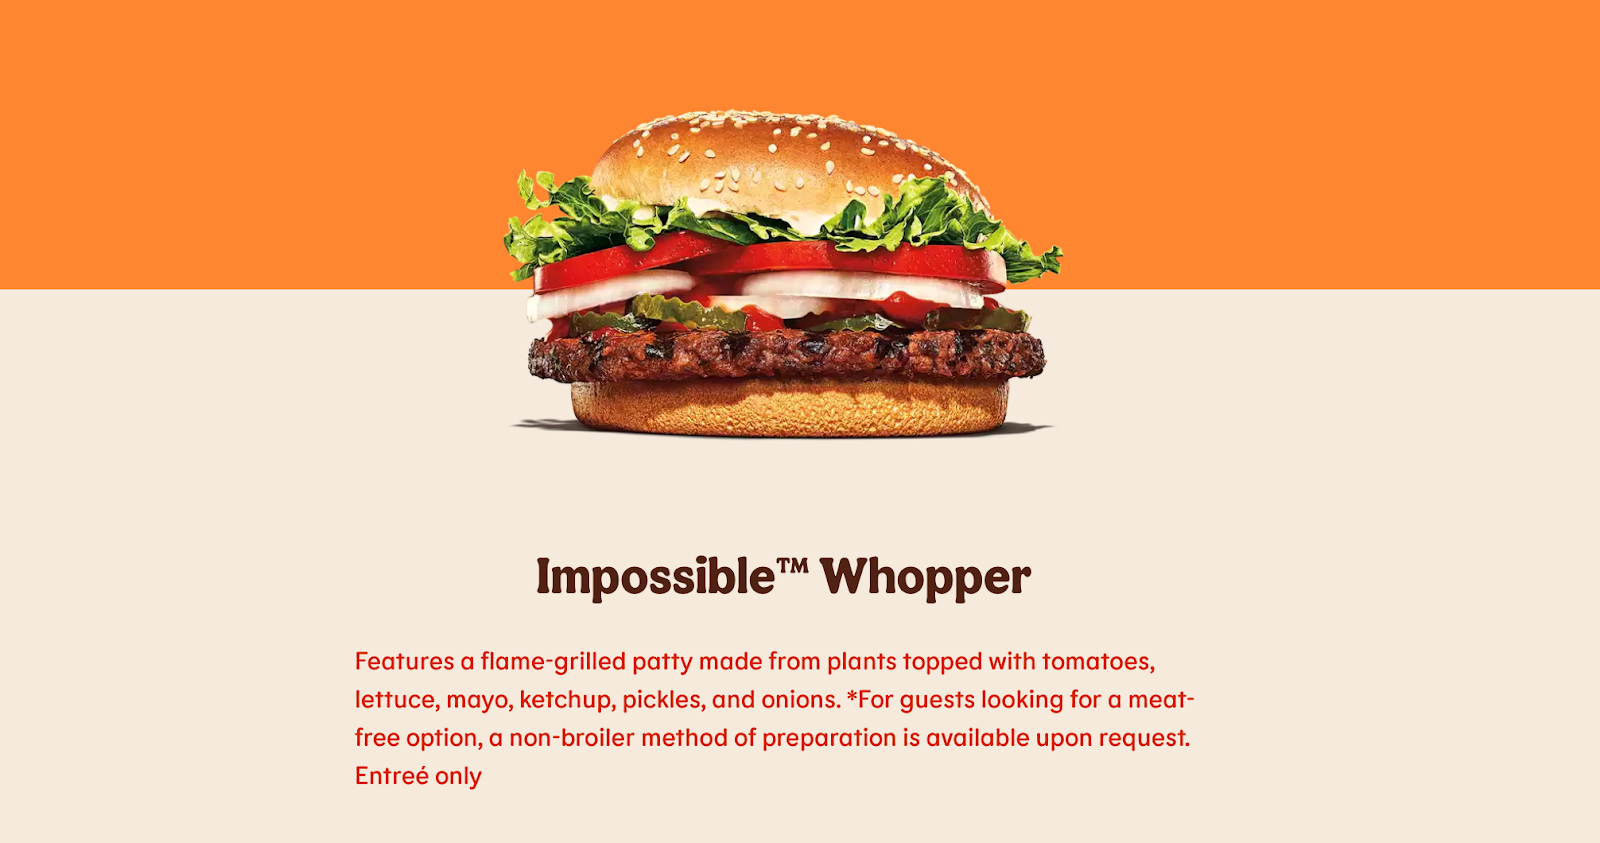 Crisis communication example of Burger King the Impossible Whopper